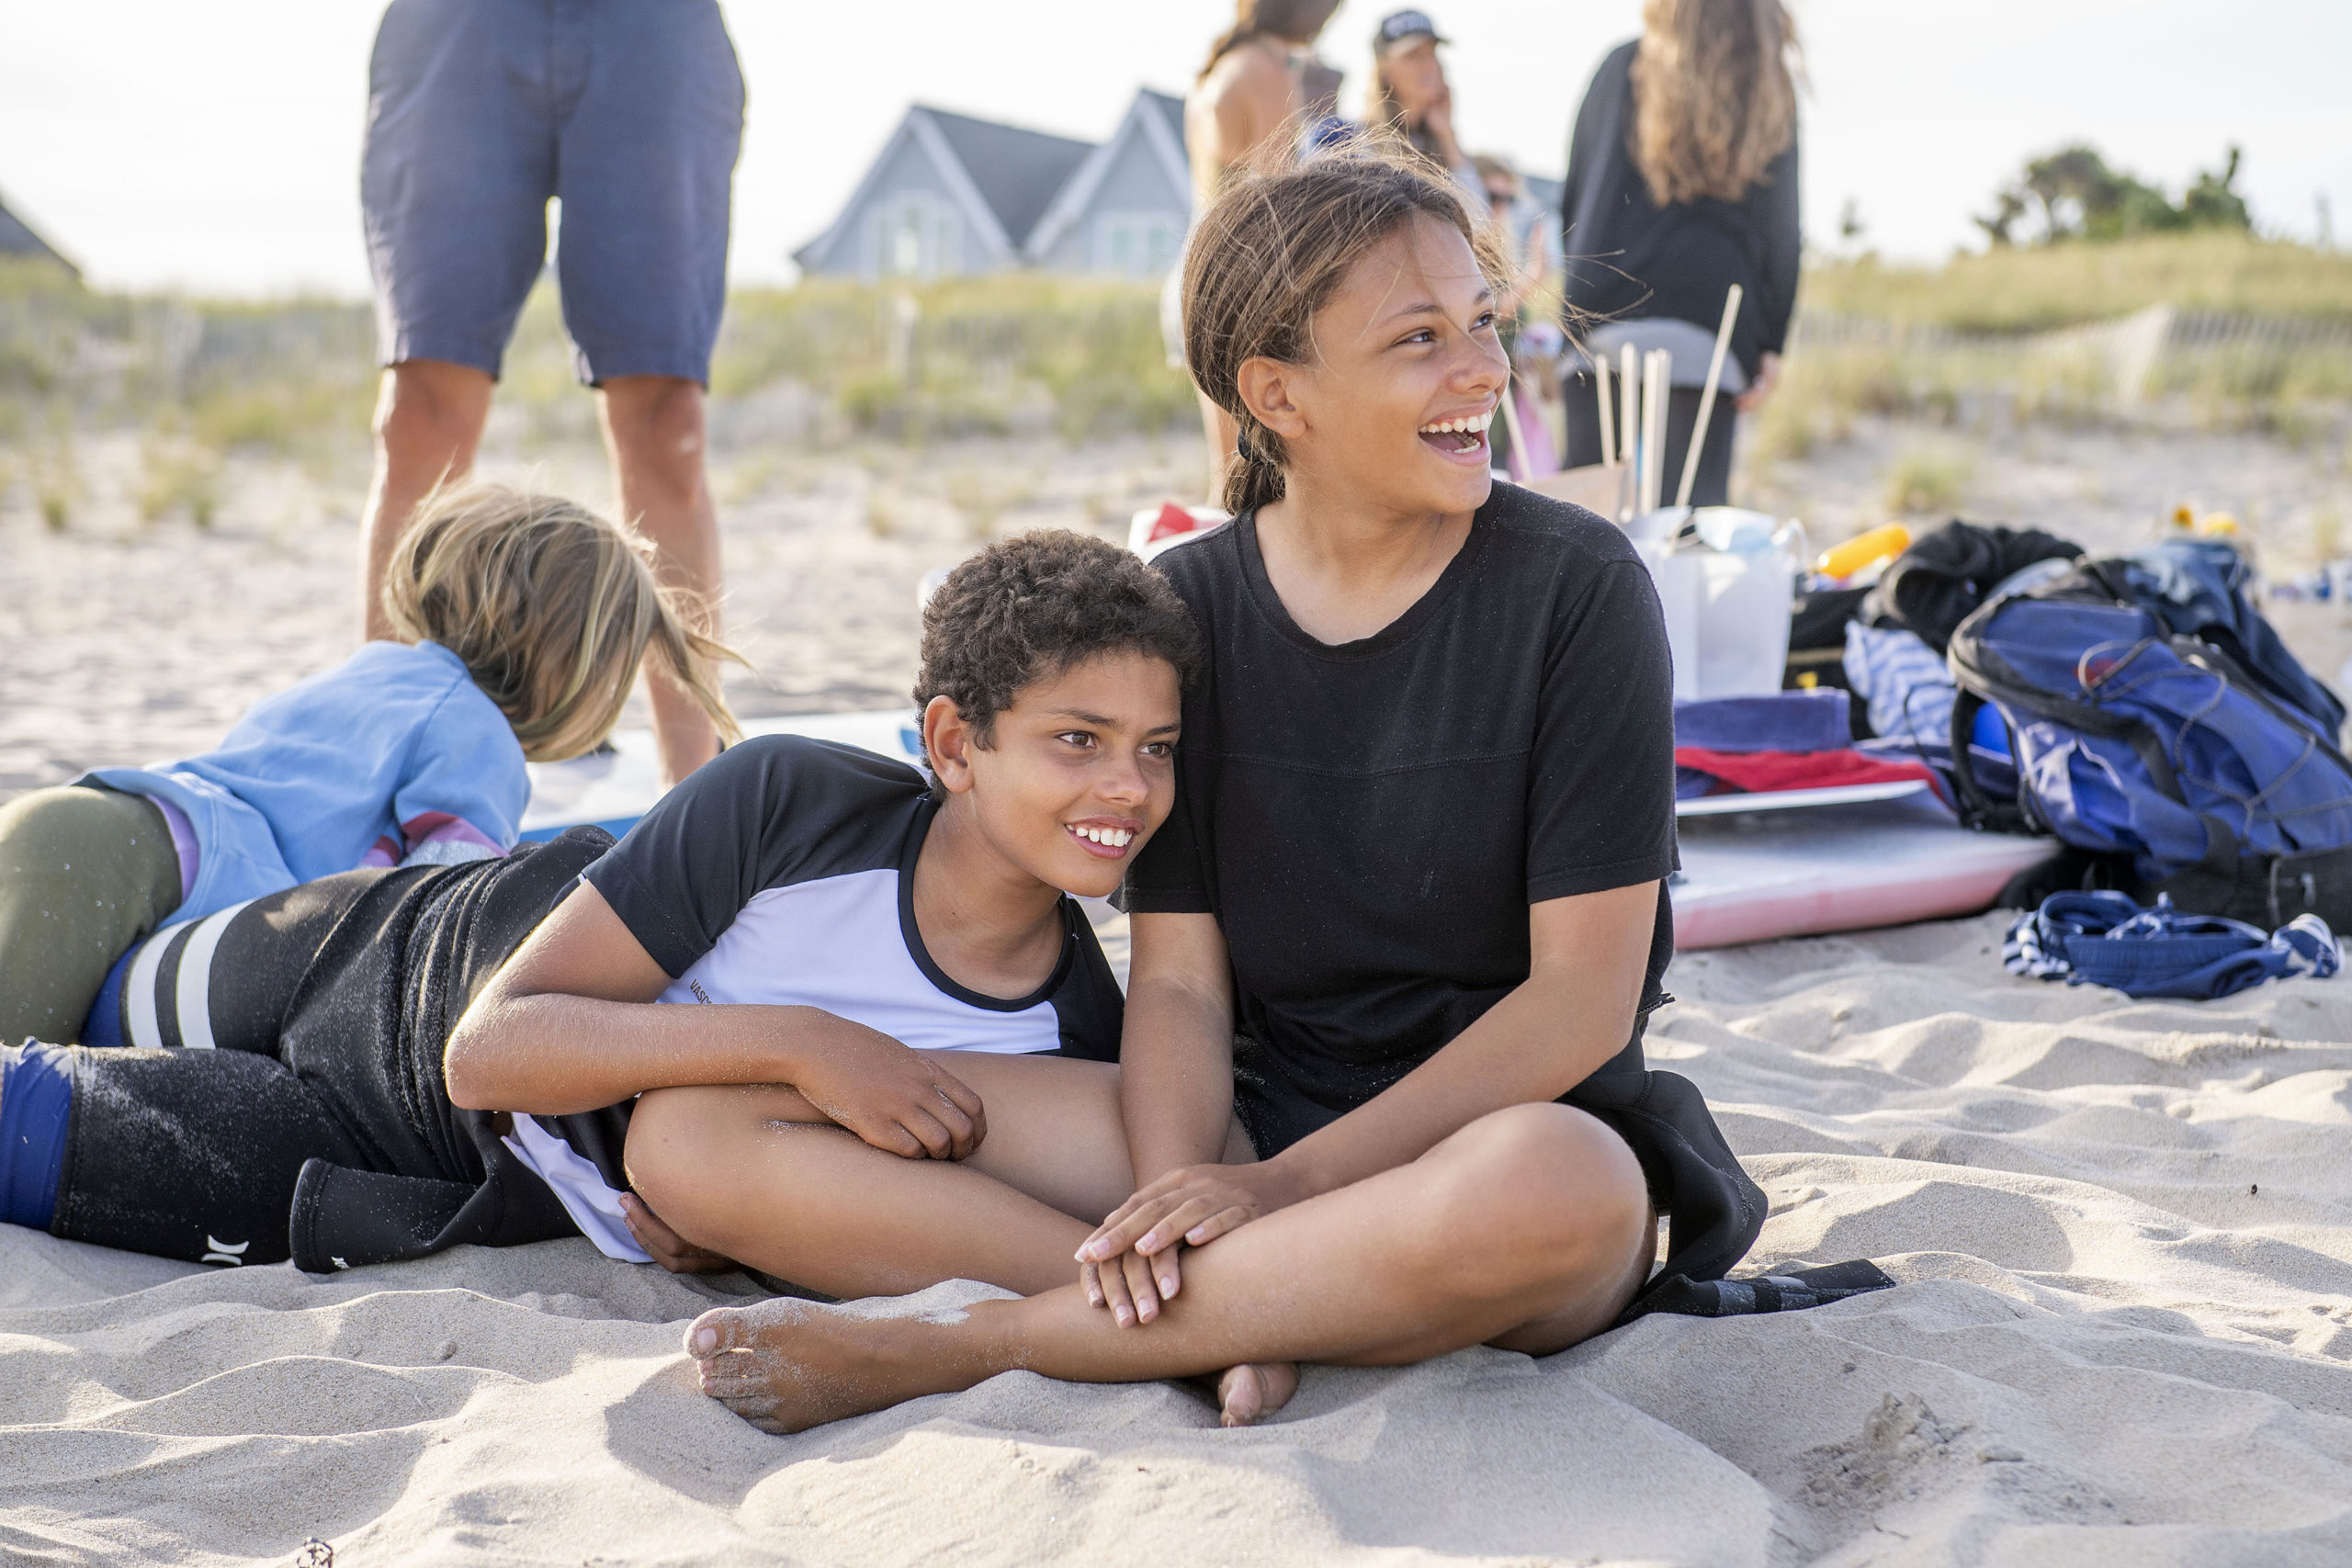 Siblings and event organizers Kilian and Sophia Cosmina Ruckriegel prior to the start of the Paddle Out in Solidarity event in support of the Black Lives Matter movement on the beach at the end of Napeague Lane in Amagansett on Wednesday, August 26.  MICHAEL HELLER